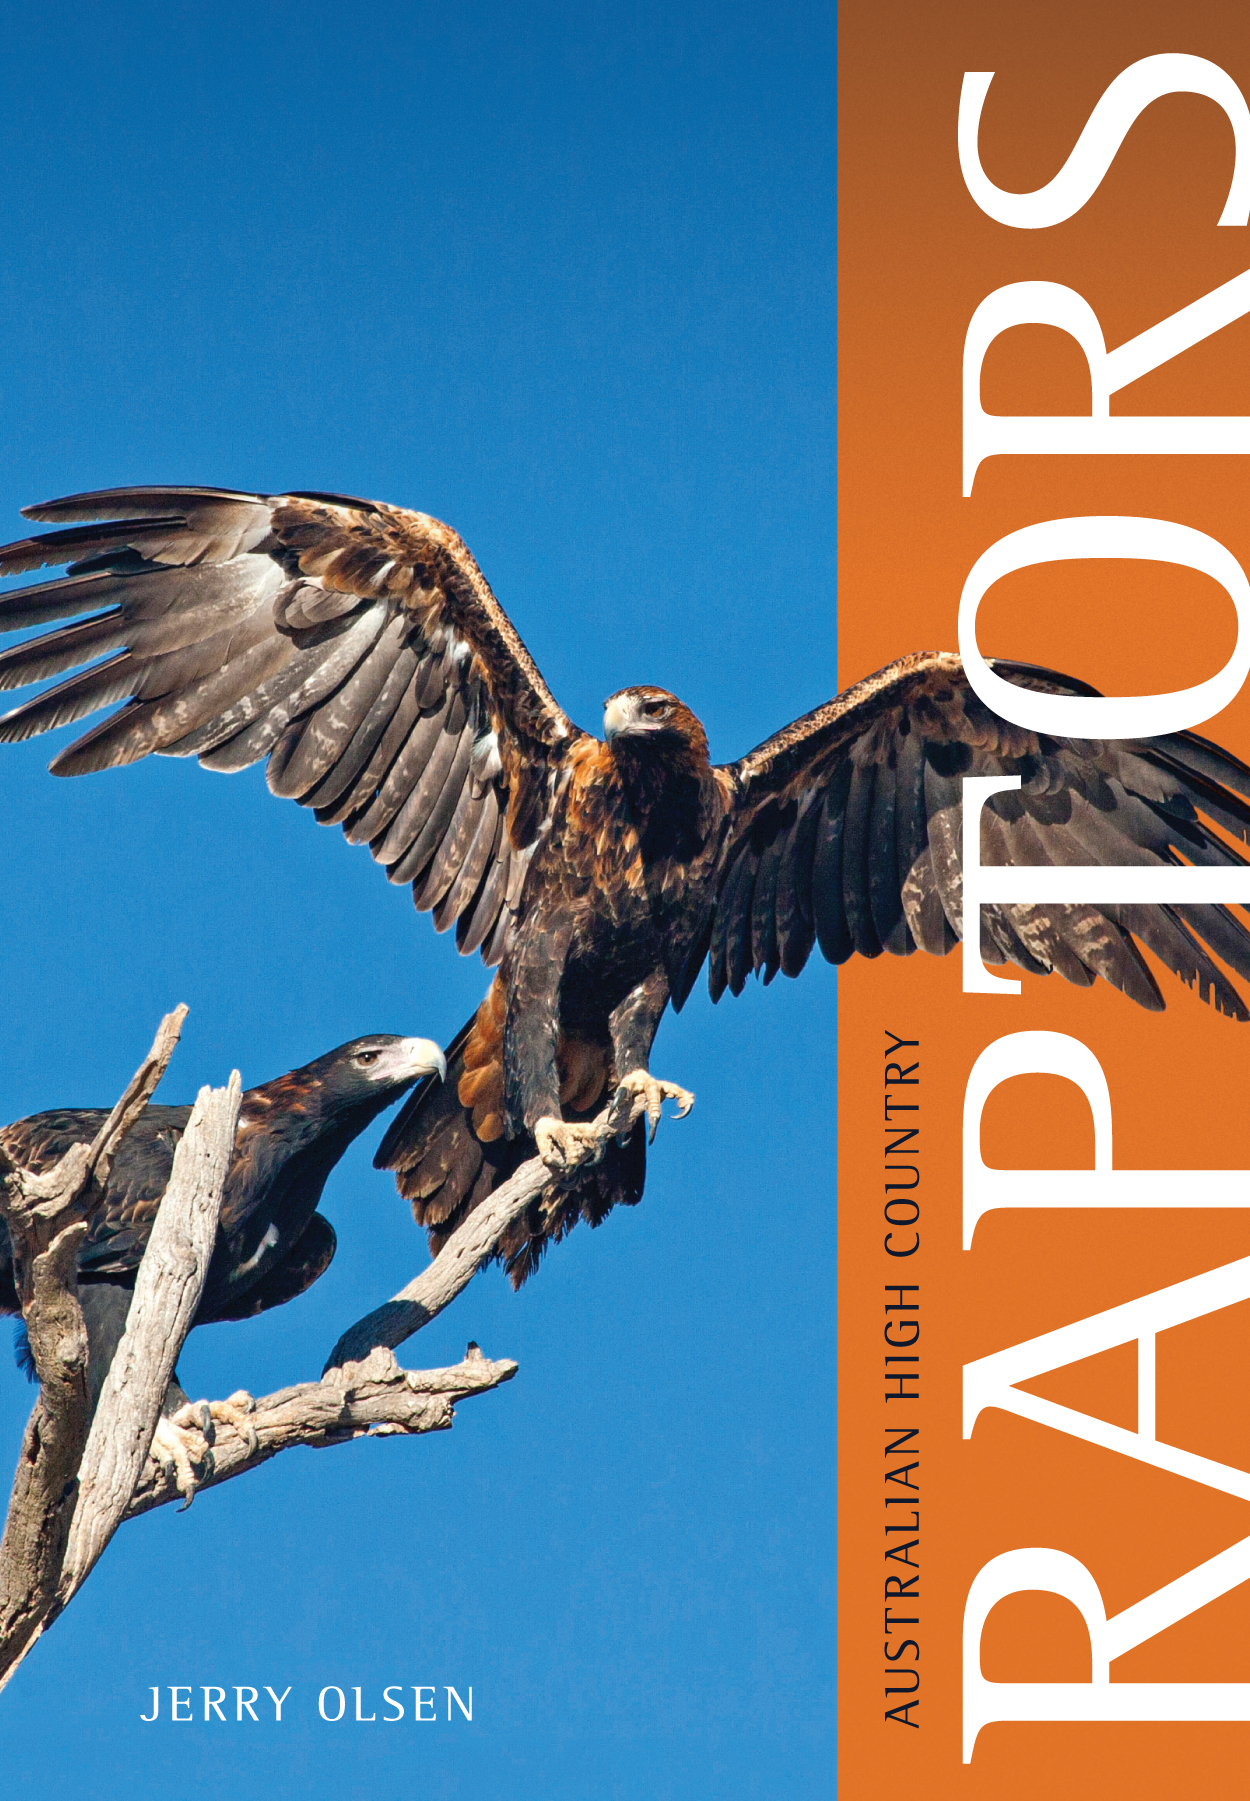 Cover is a large eagle with its wings spread against a plain blue backgrou